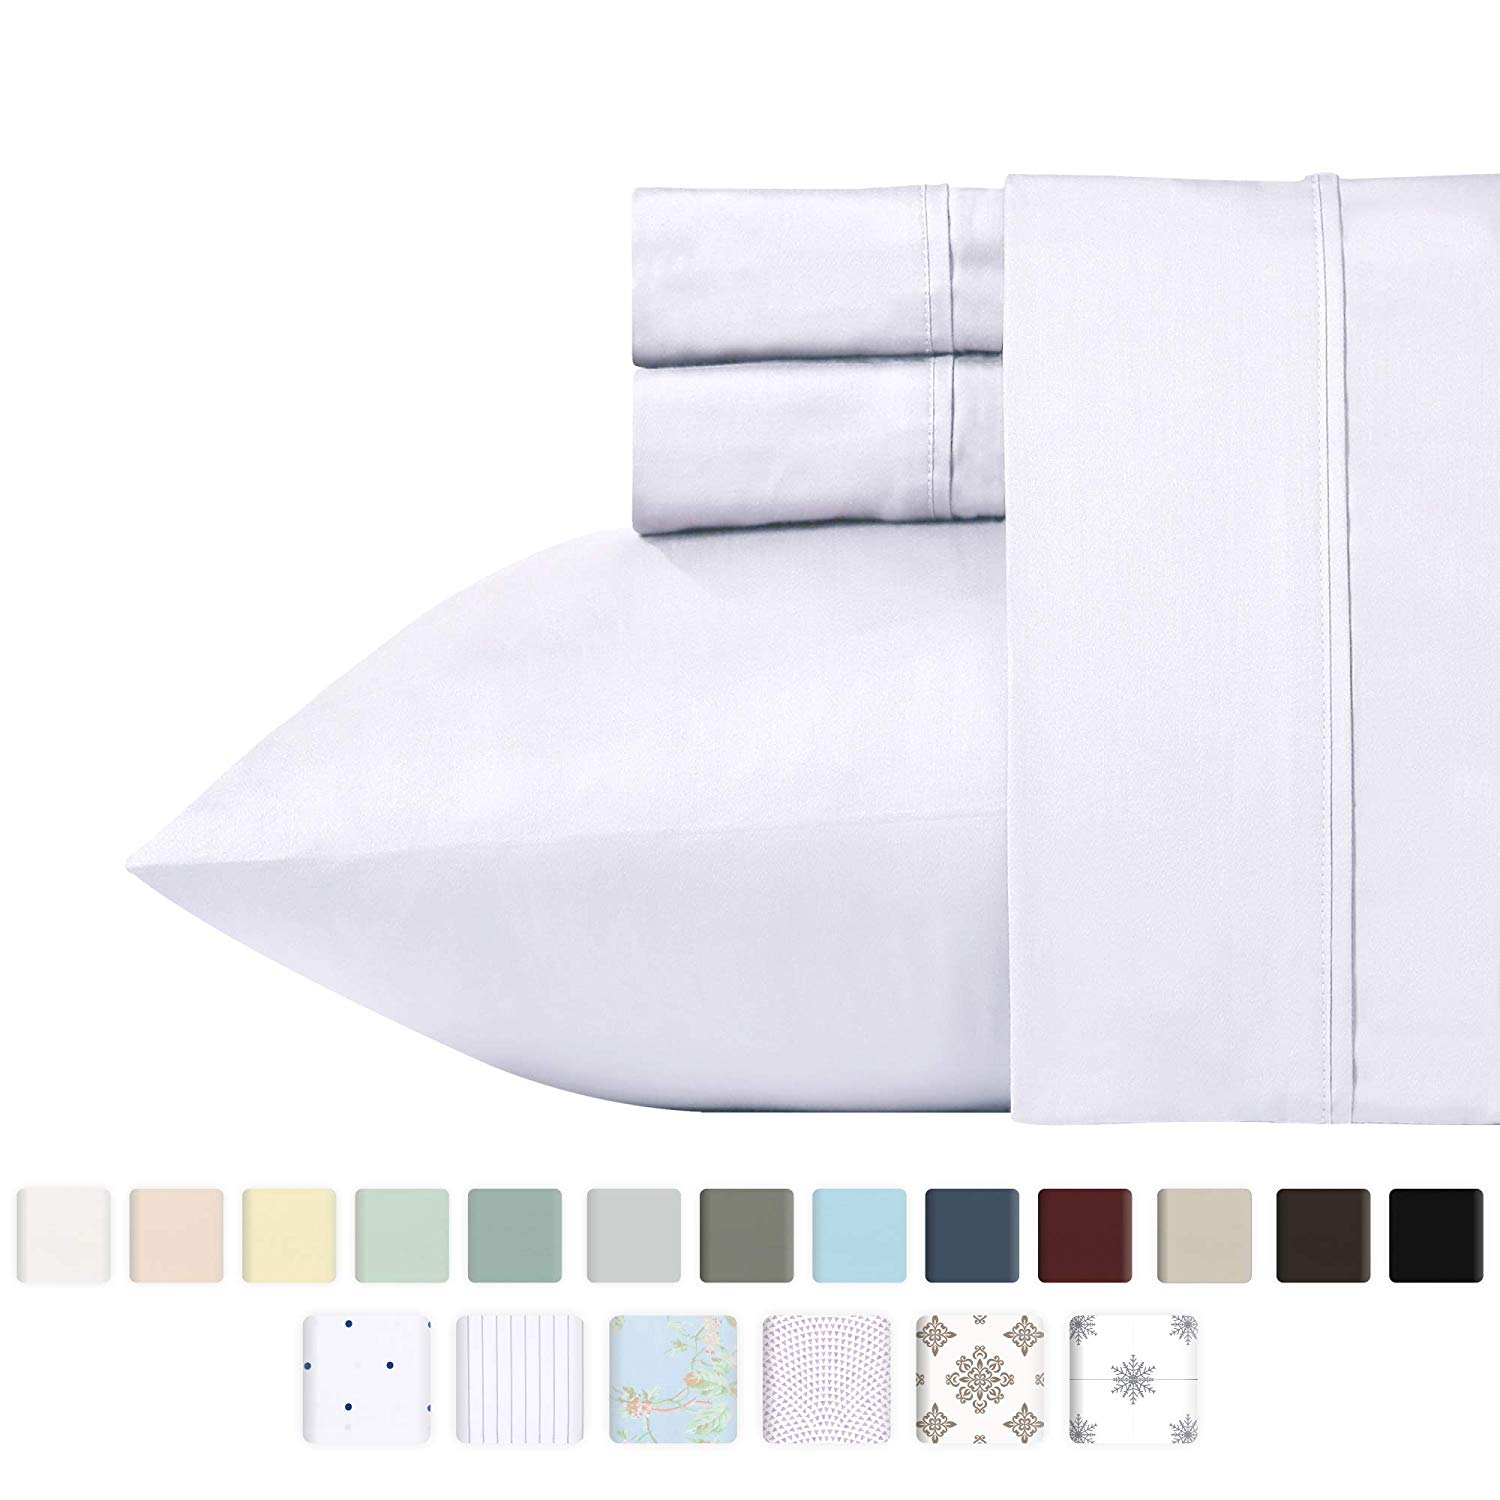 California Design Den Everyday Comfort Sheets Review